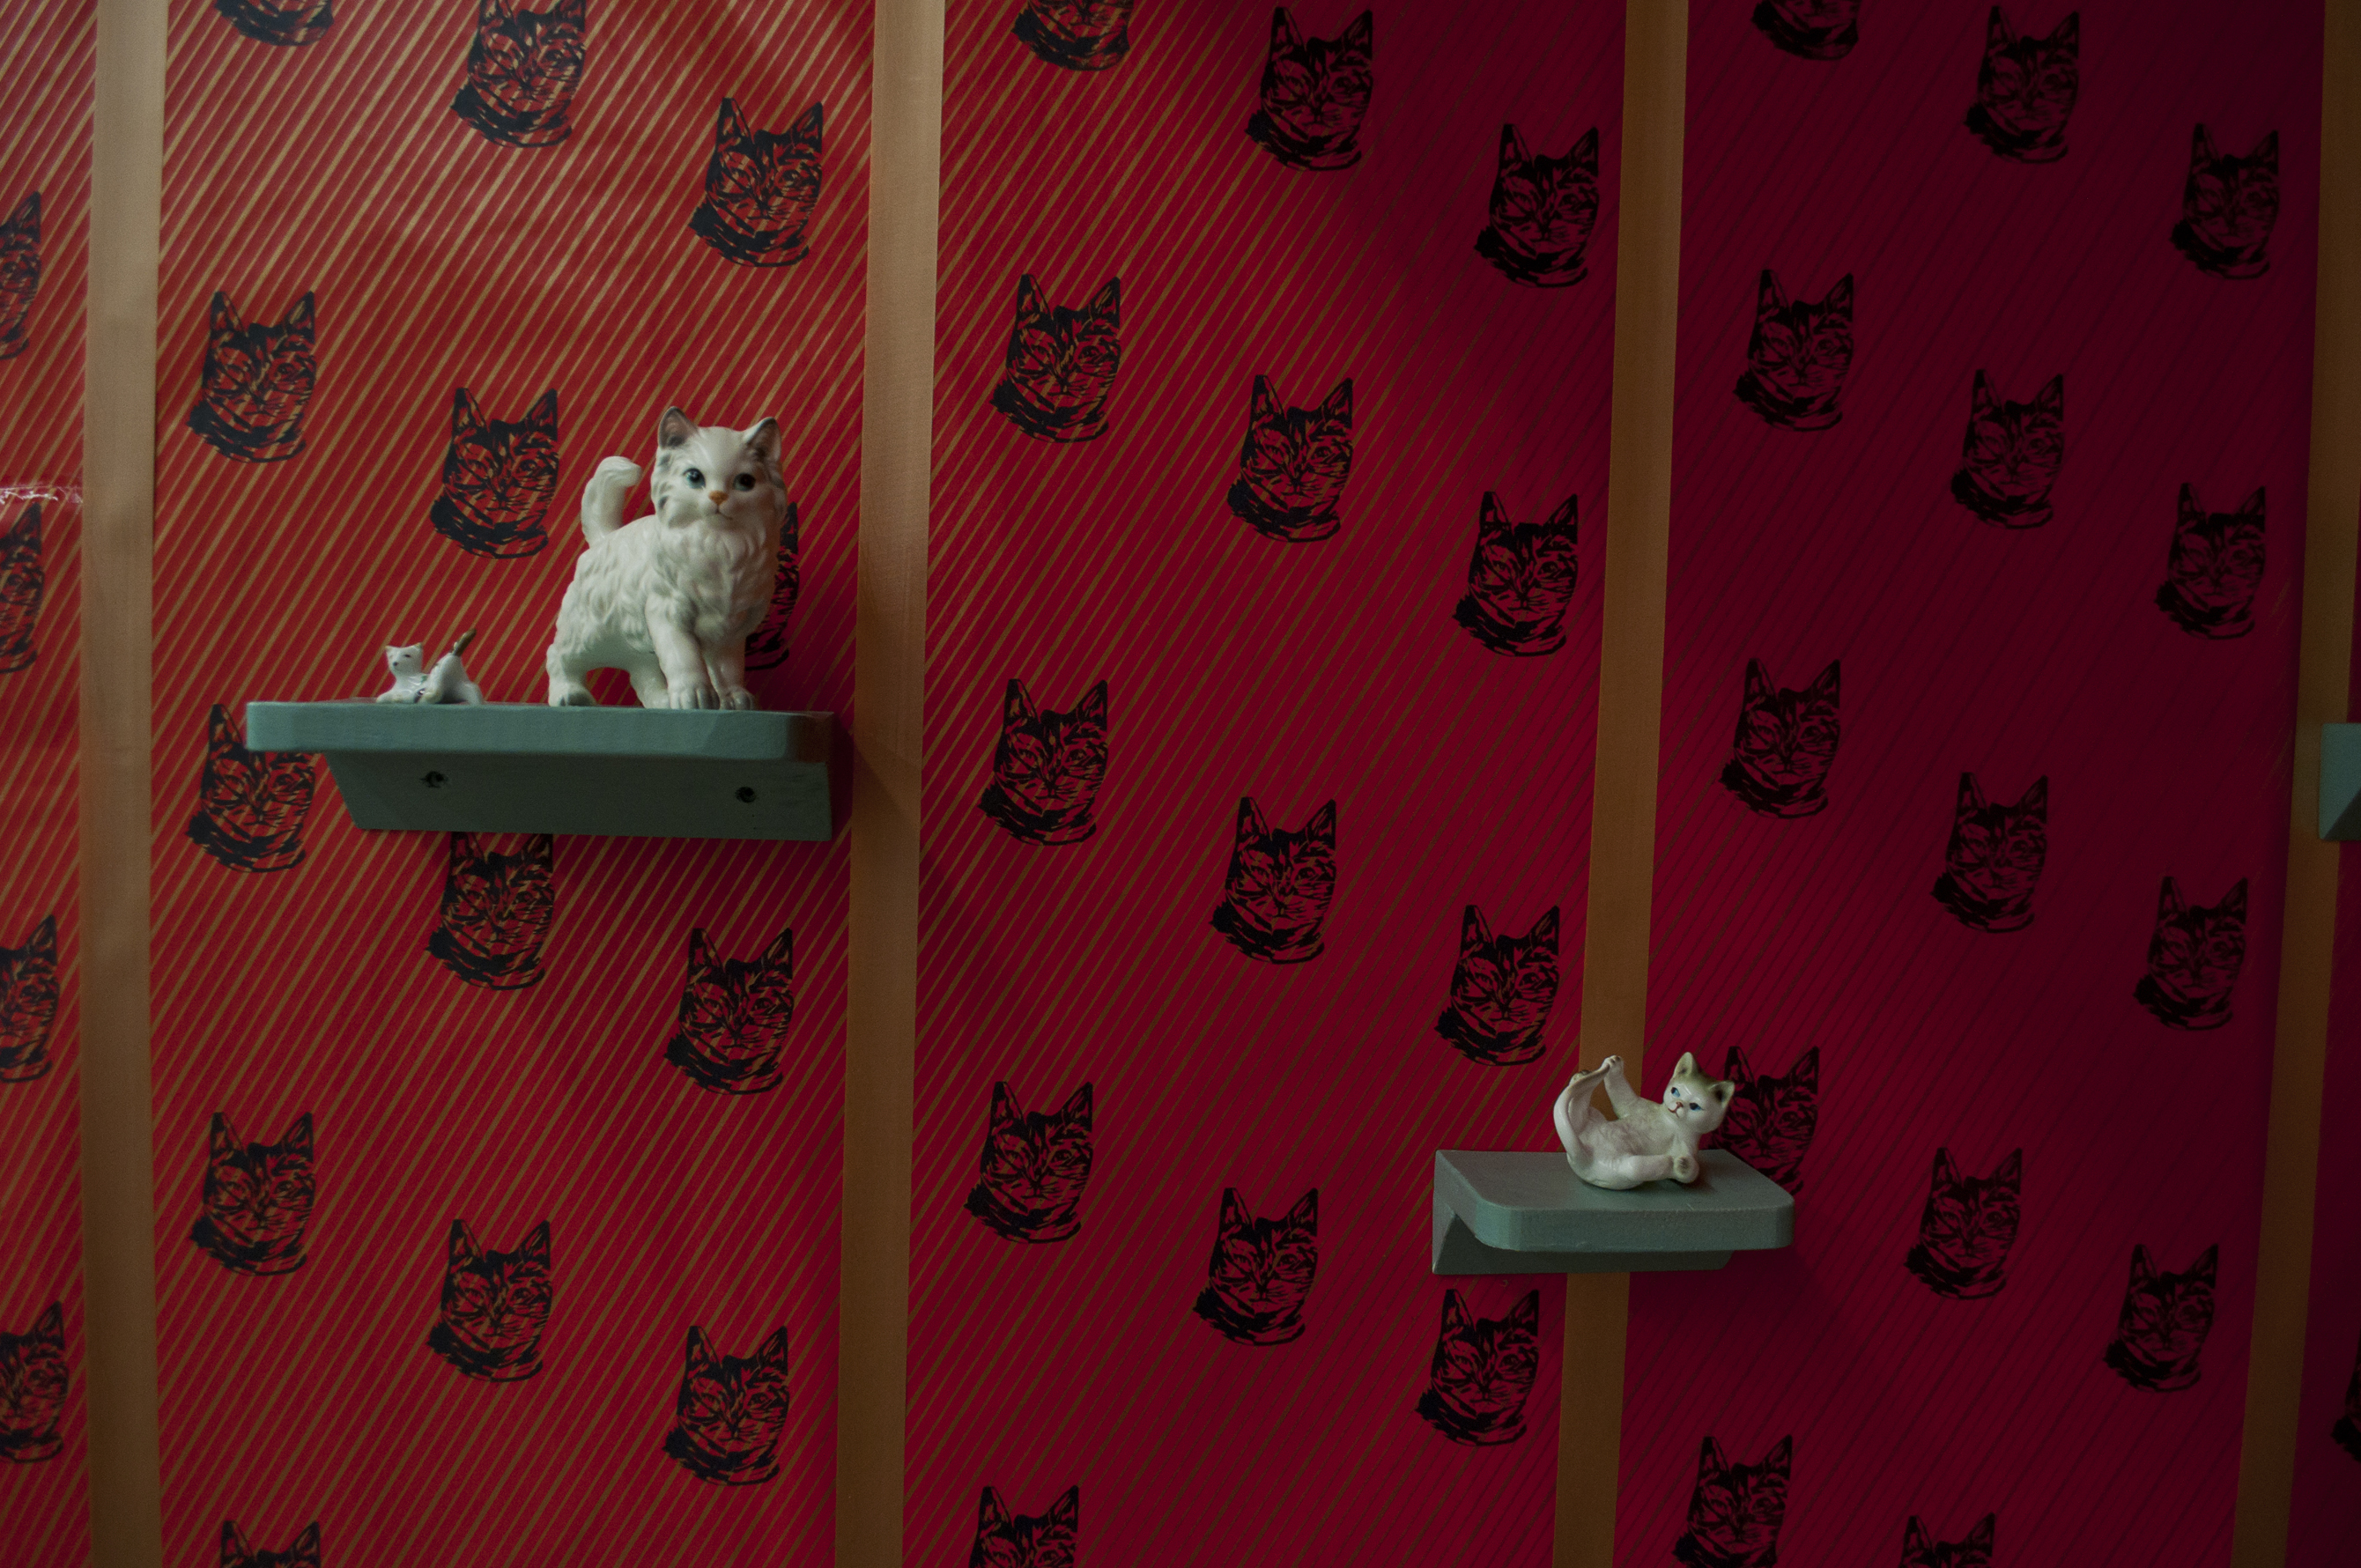 Cat Room I (detail)